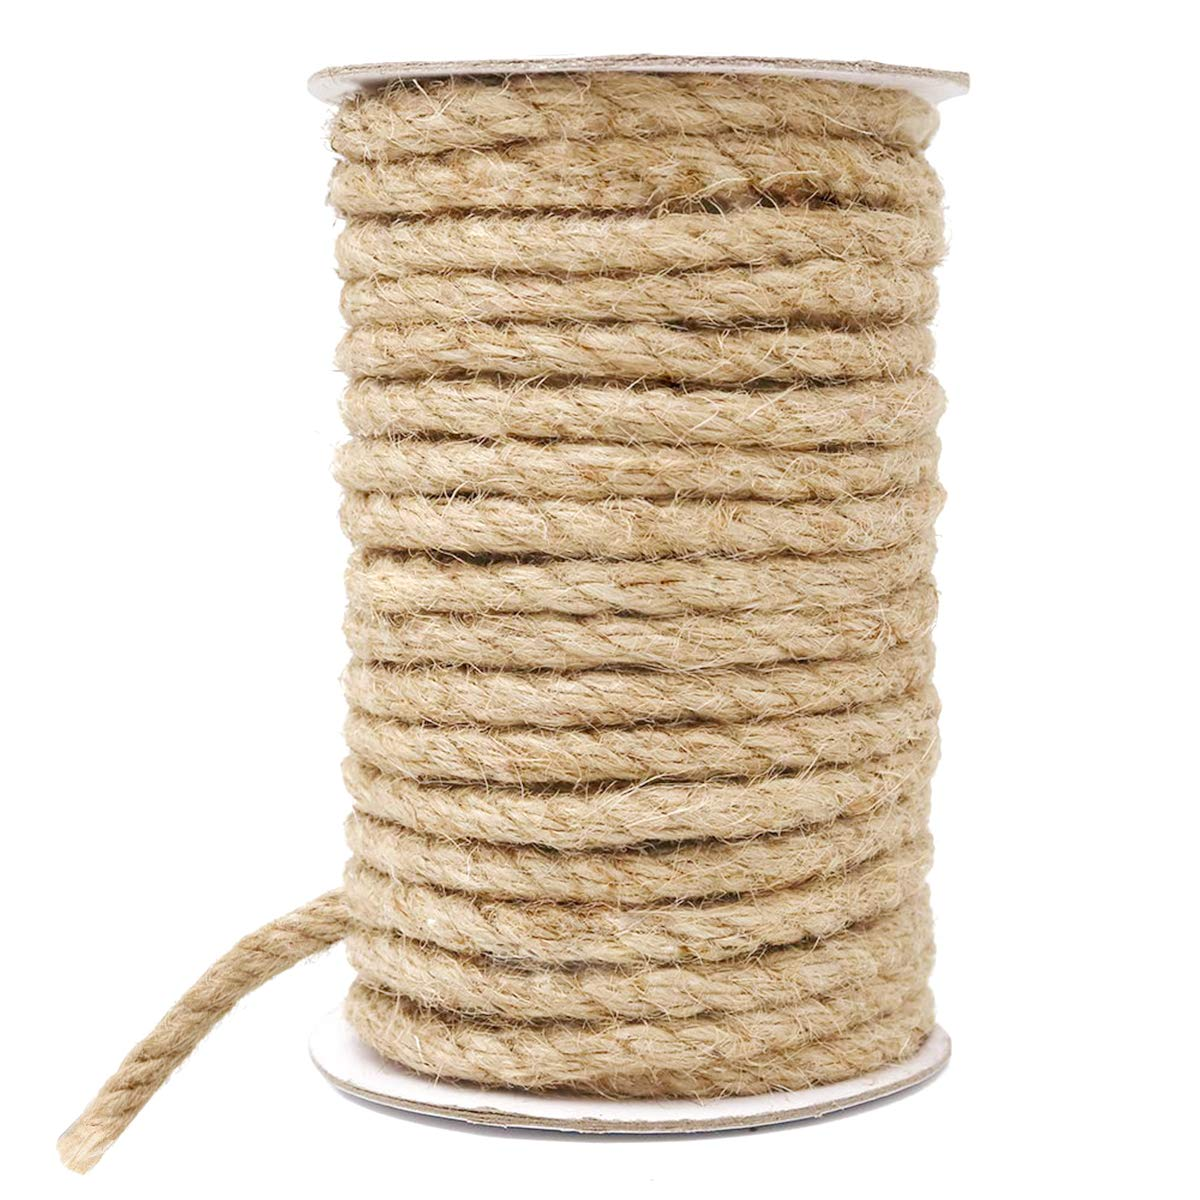 HOMYHOME Jute Rope Natural Jute Twine 8 mm Hemp Rope Cord Craft for Packaging Arts,Crafts Decoration Bundling Gardening Home 50 Feet by HOMYHOME